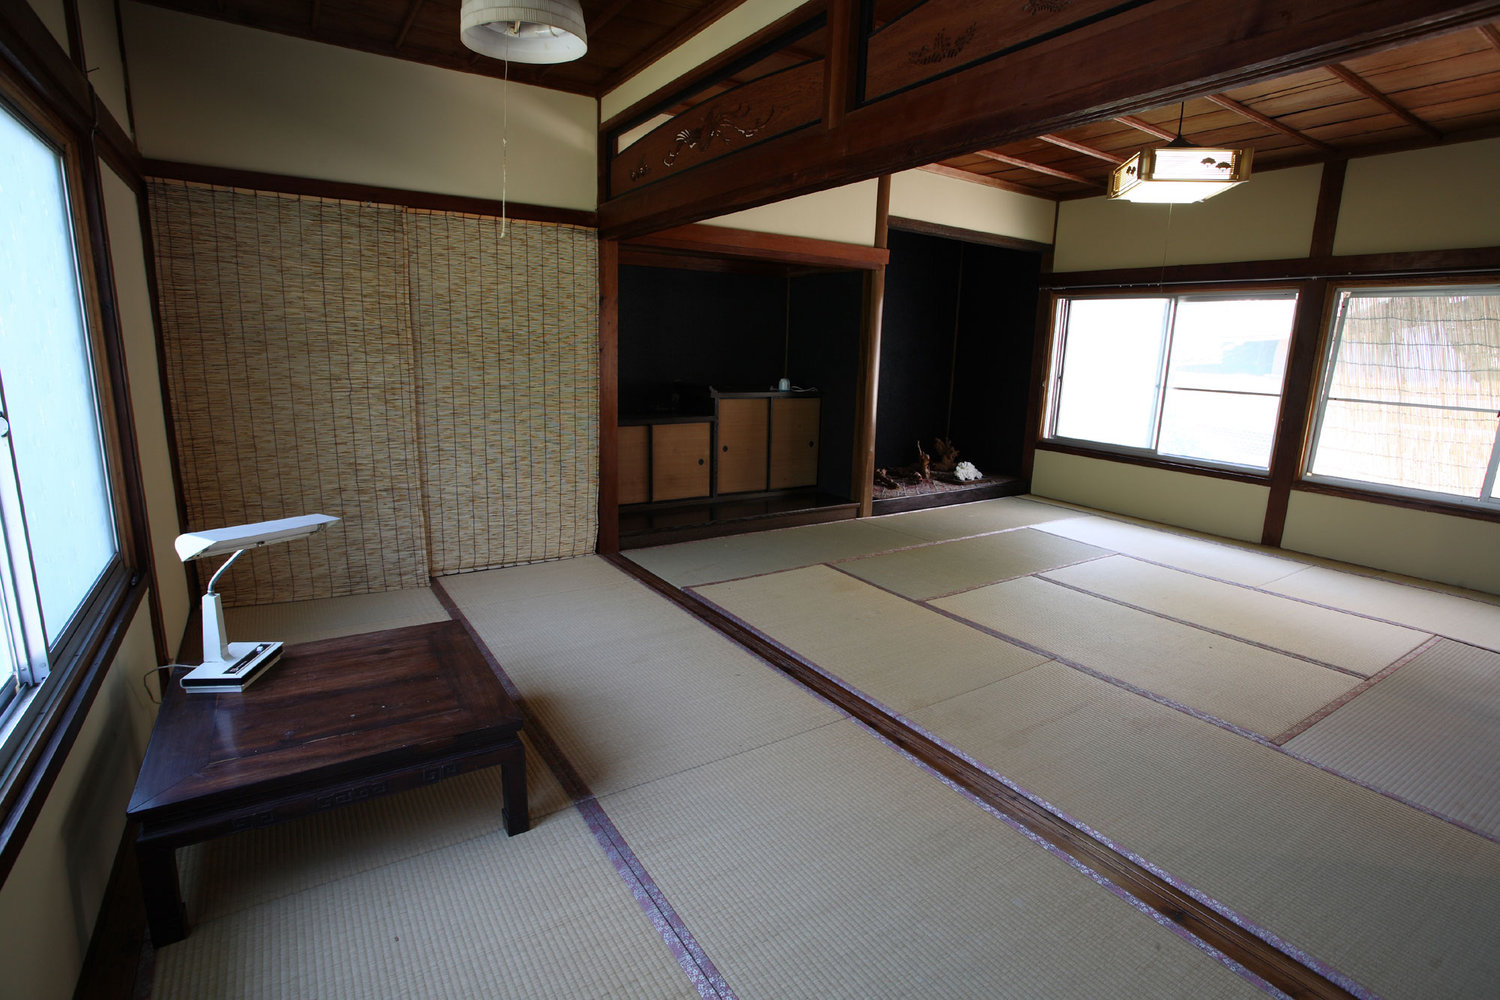 apanese style room with tatami flooring and a sliding door. Maximum 4~7 people.